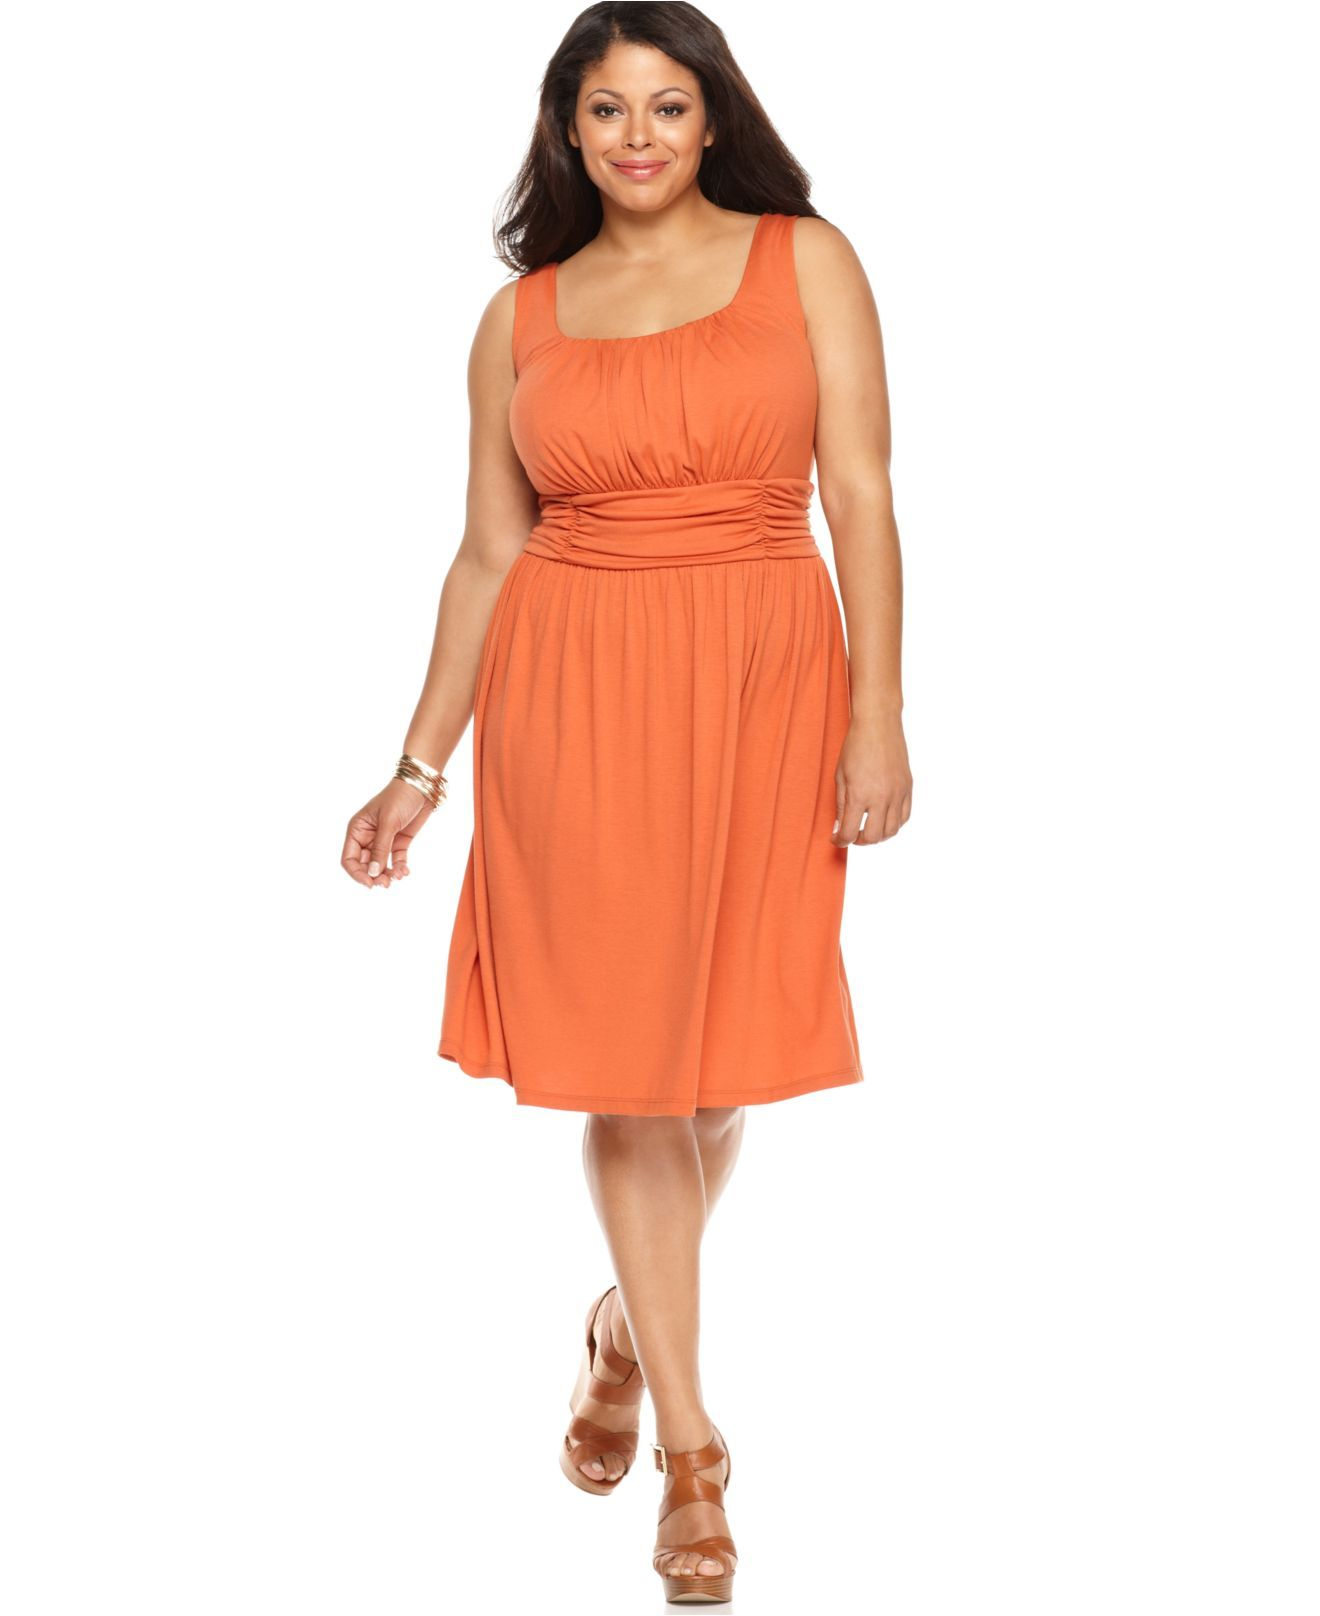 bridesmaid dress - agb plus size dress, sleeveless ruched waist